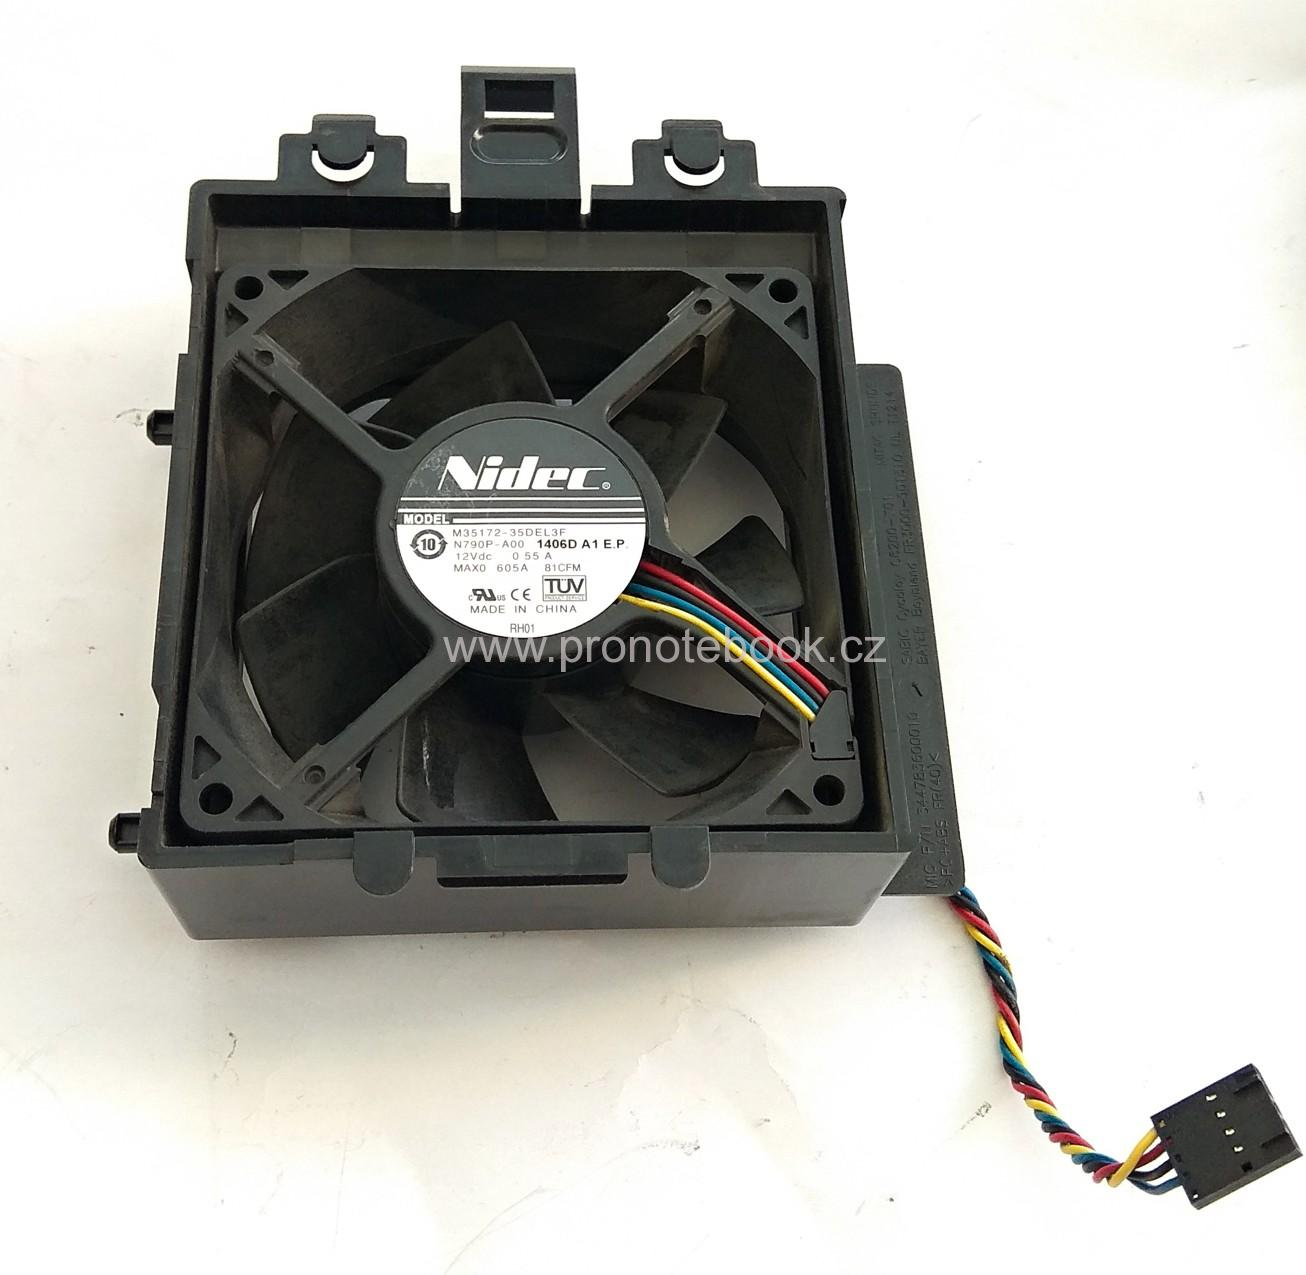 Nidec PowerEdge T110 fan M35172-35DEL3F, N790P-A00, 1406D A1 E.P.